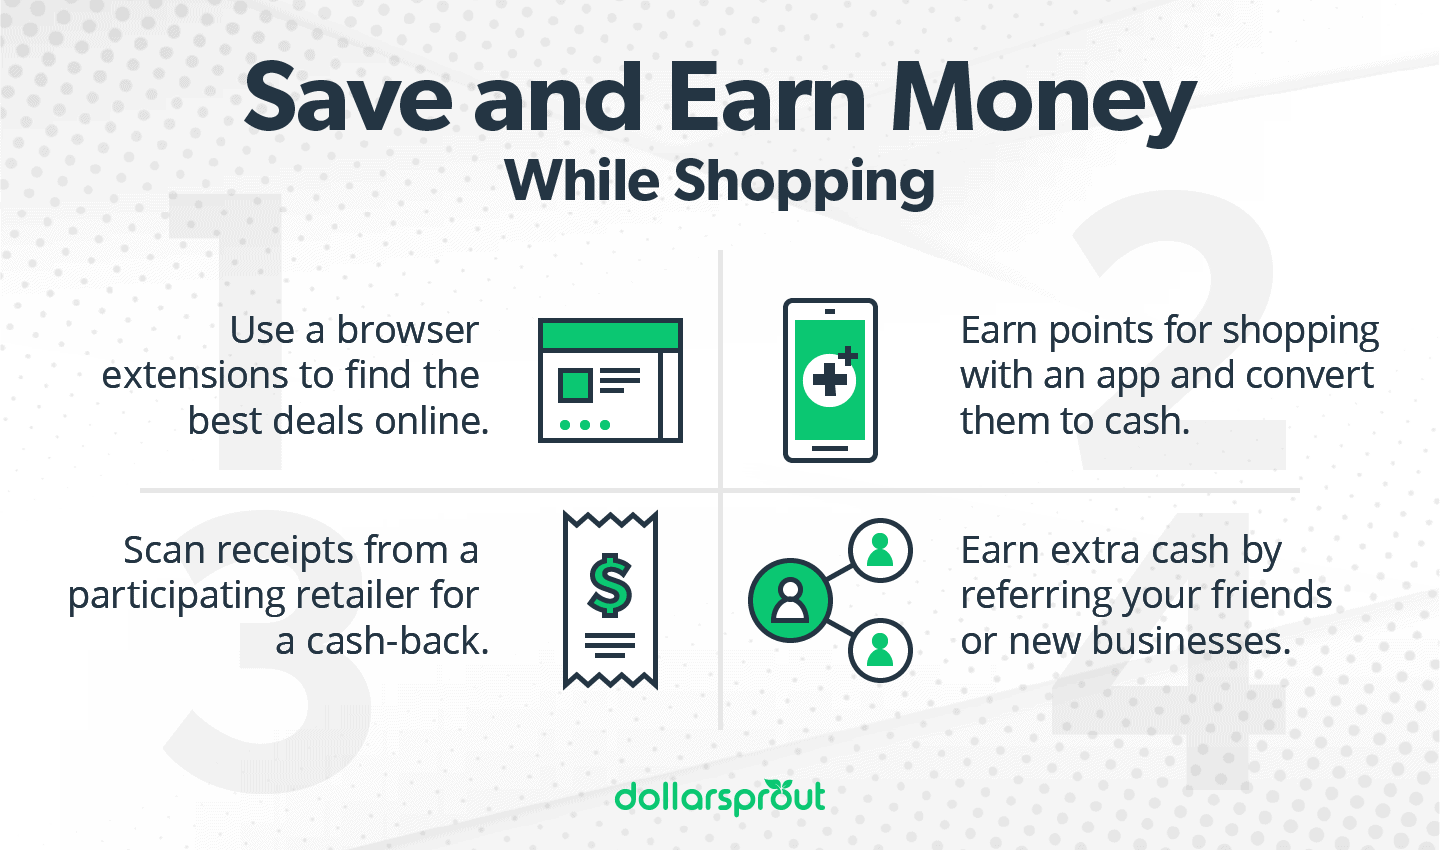 Save and Earn Money While Shopping